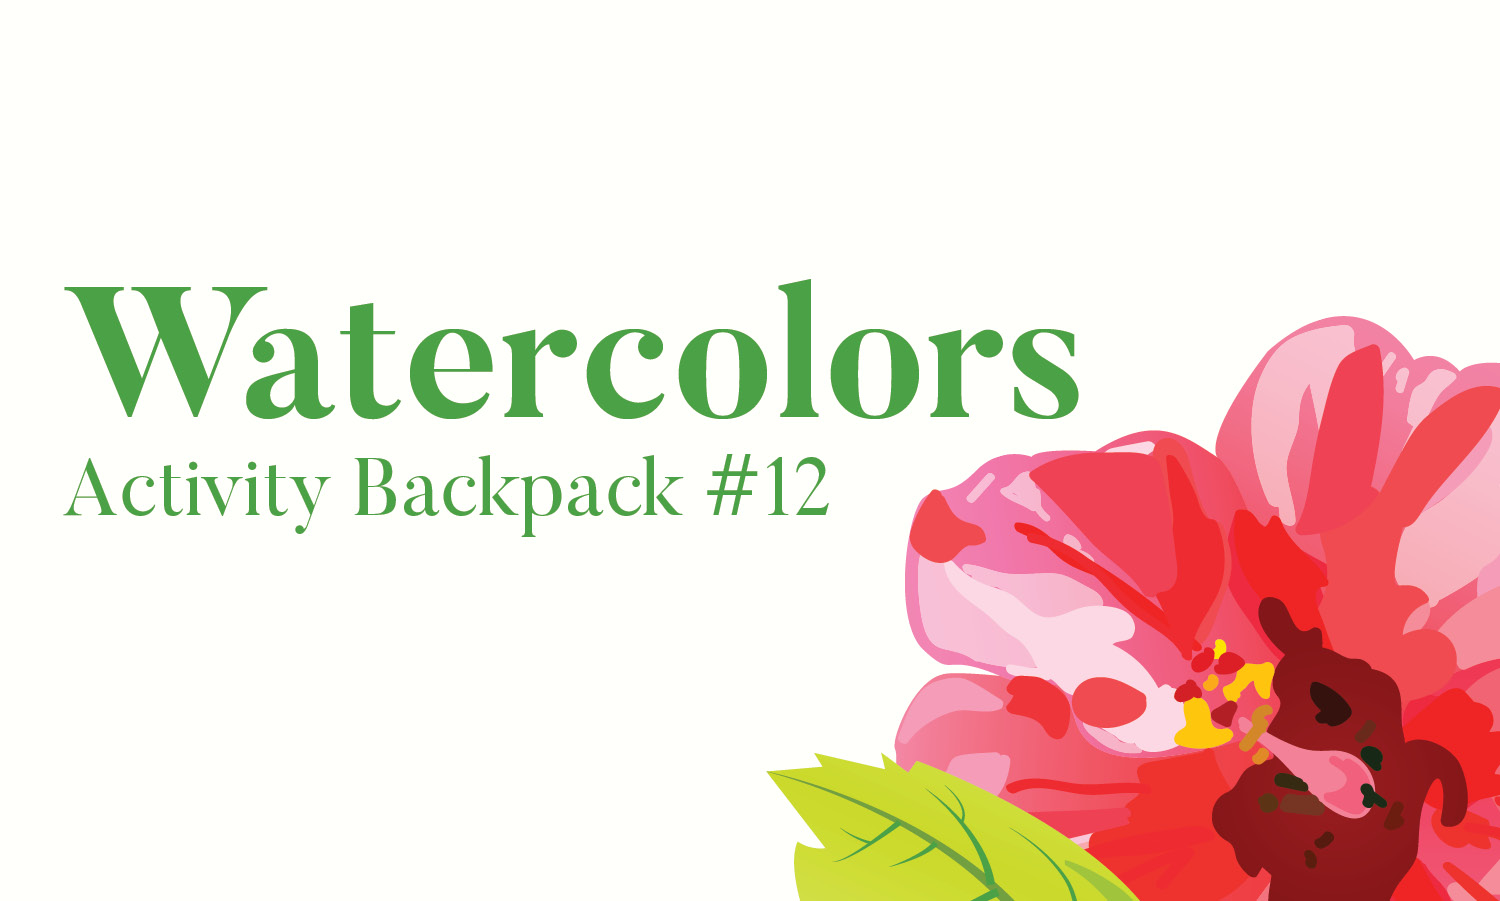 Red and pink watercolor flower in lower right corner. Text on the left of the illustration says Watercolors, Activity Backpack #12.